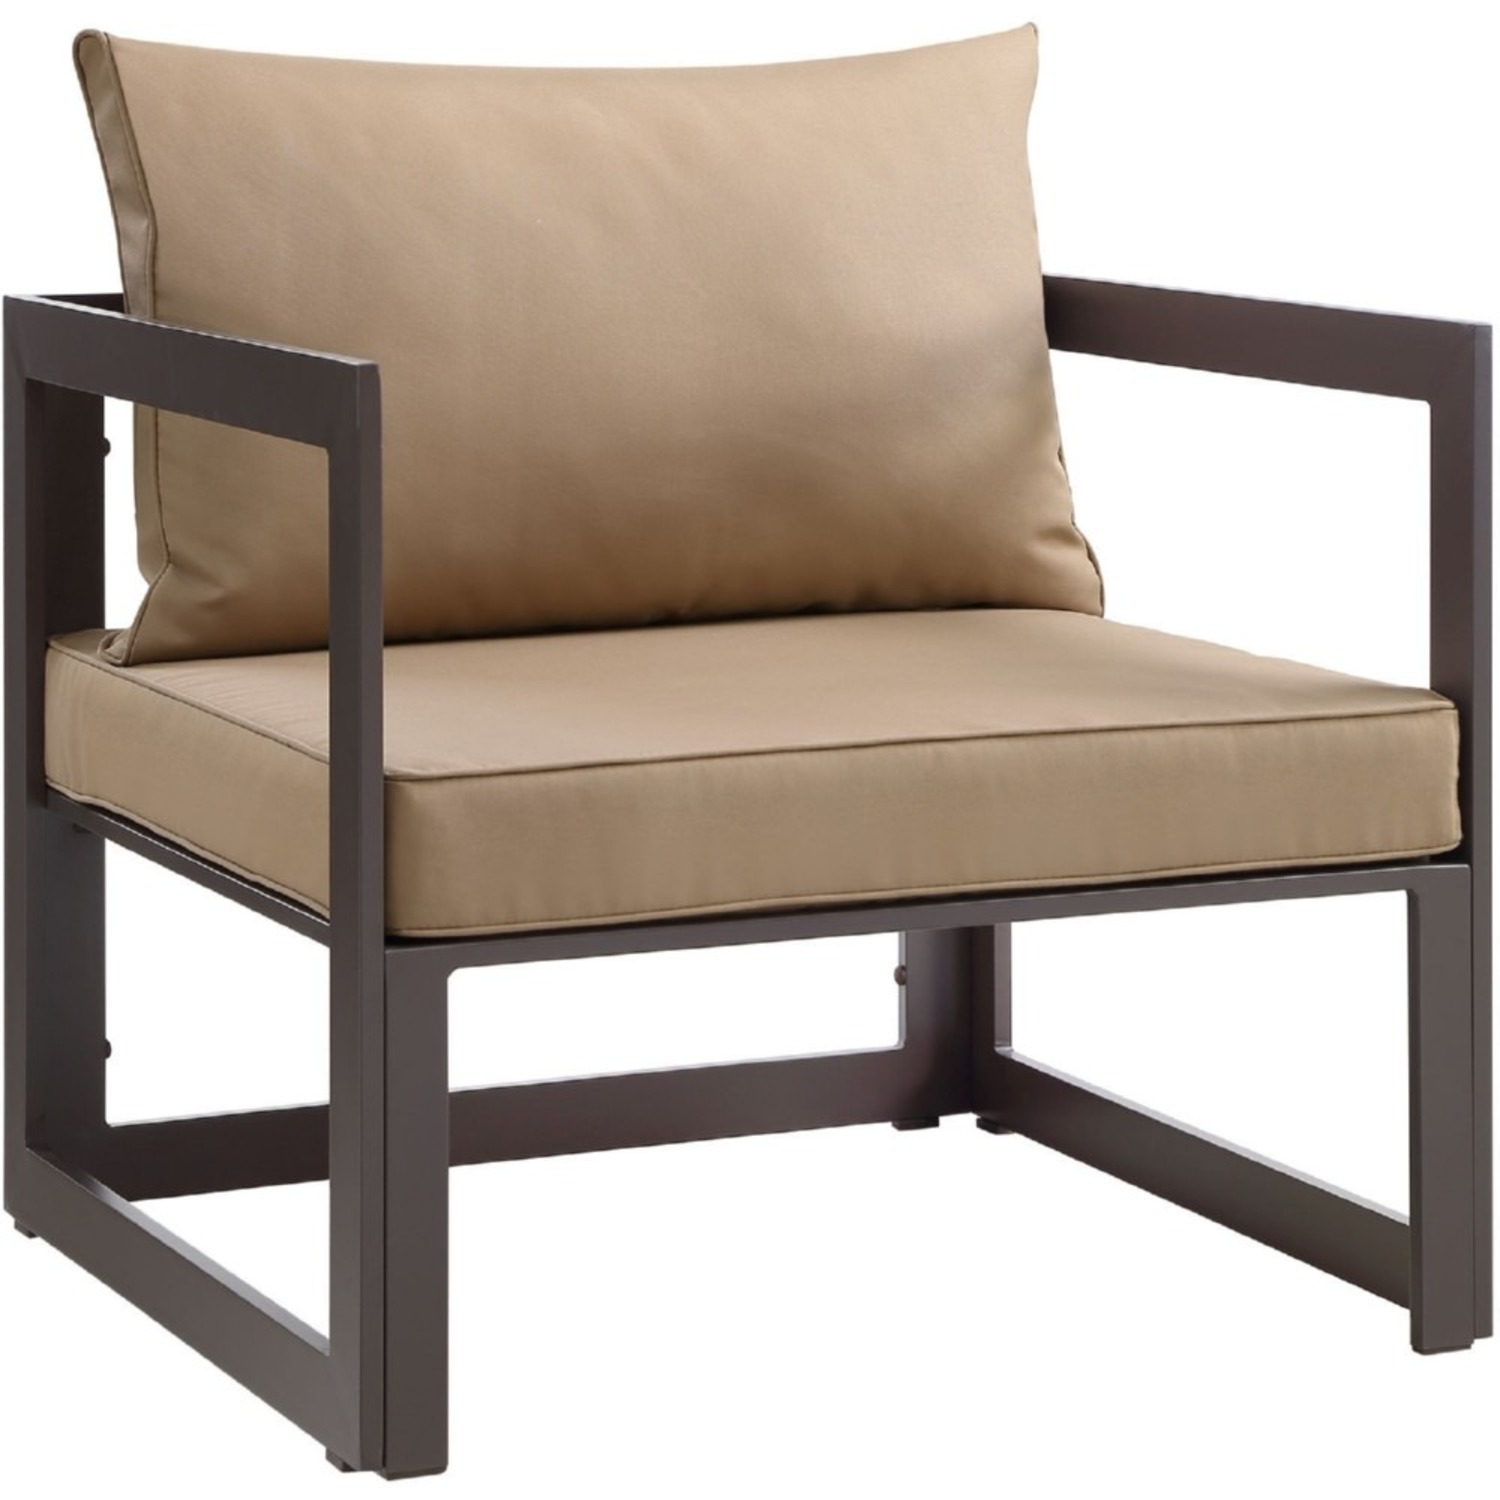 7-Piece Outdoor Sectional In Mocha & Brown Finish - image-7